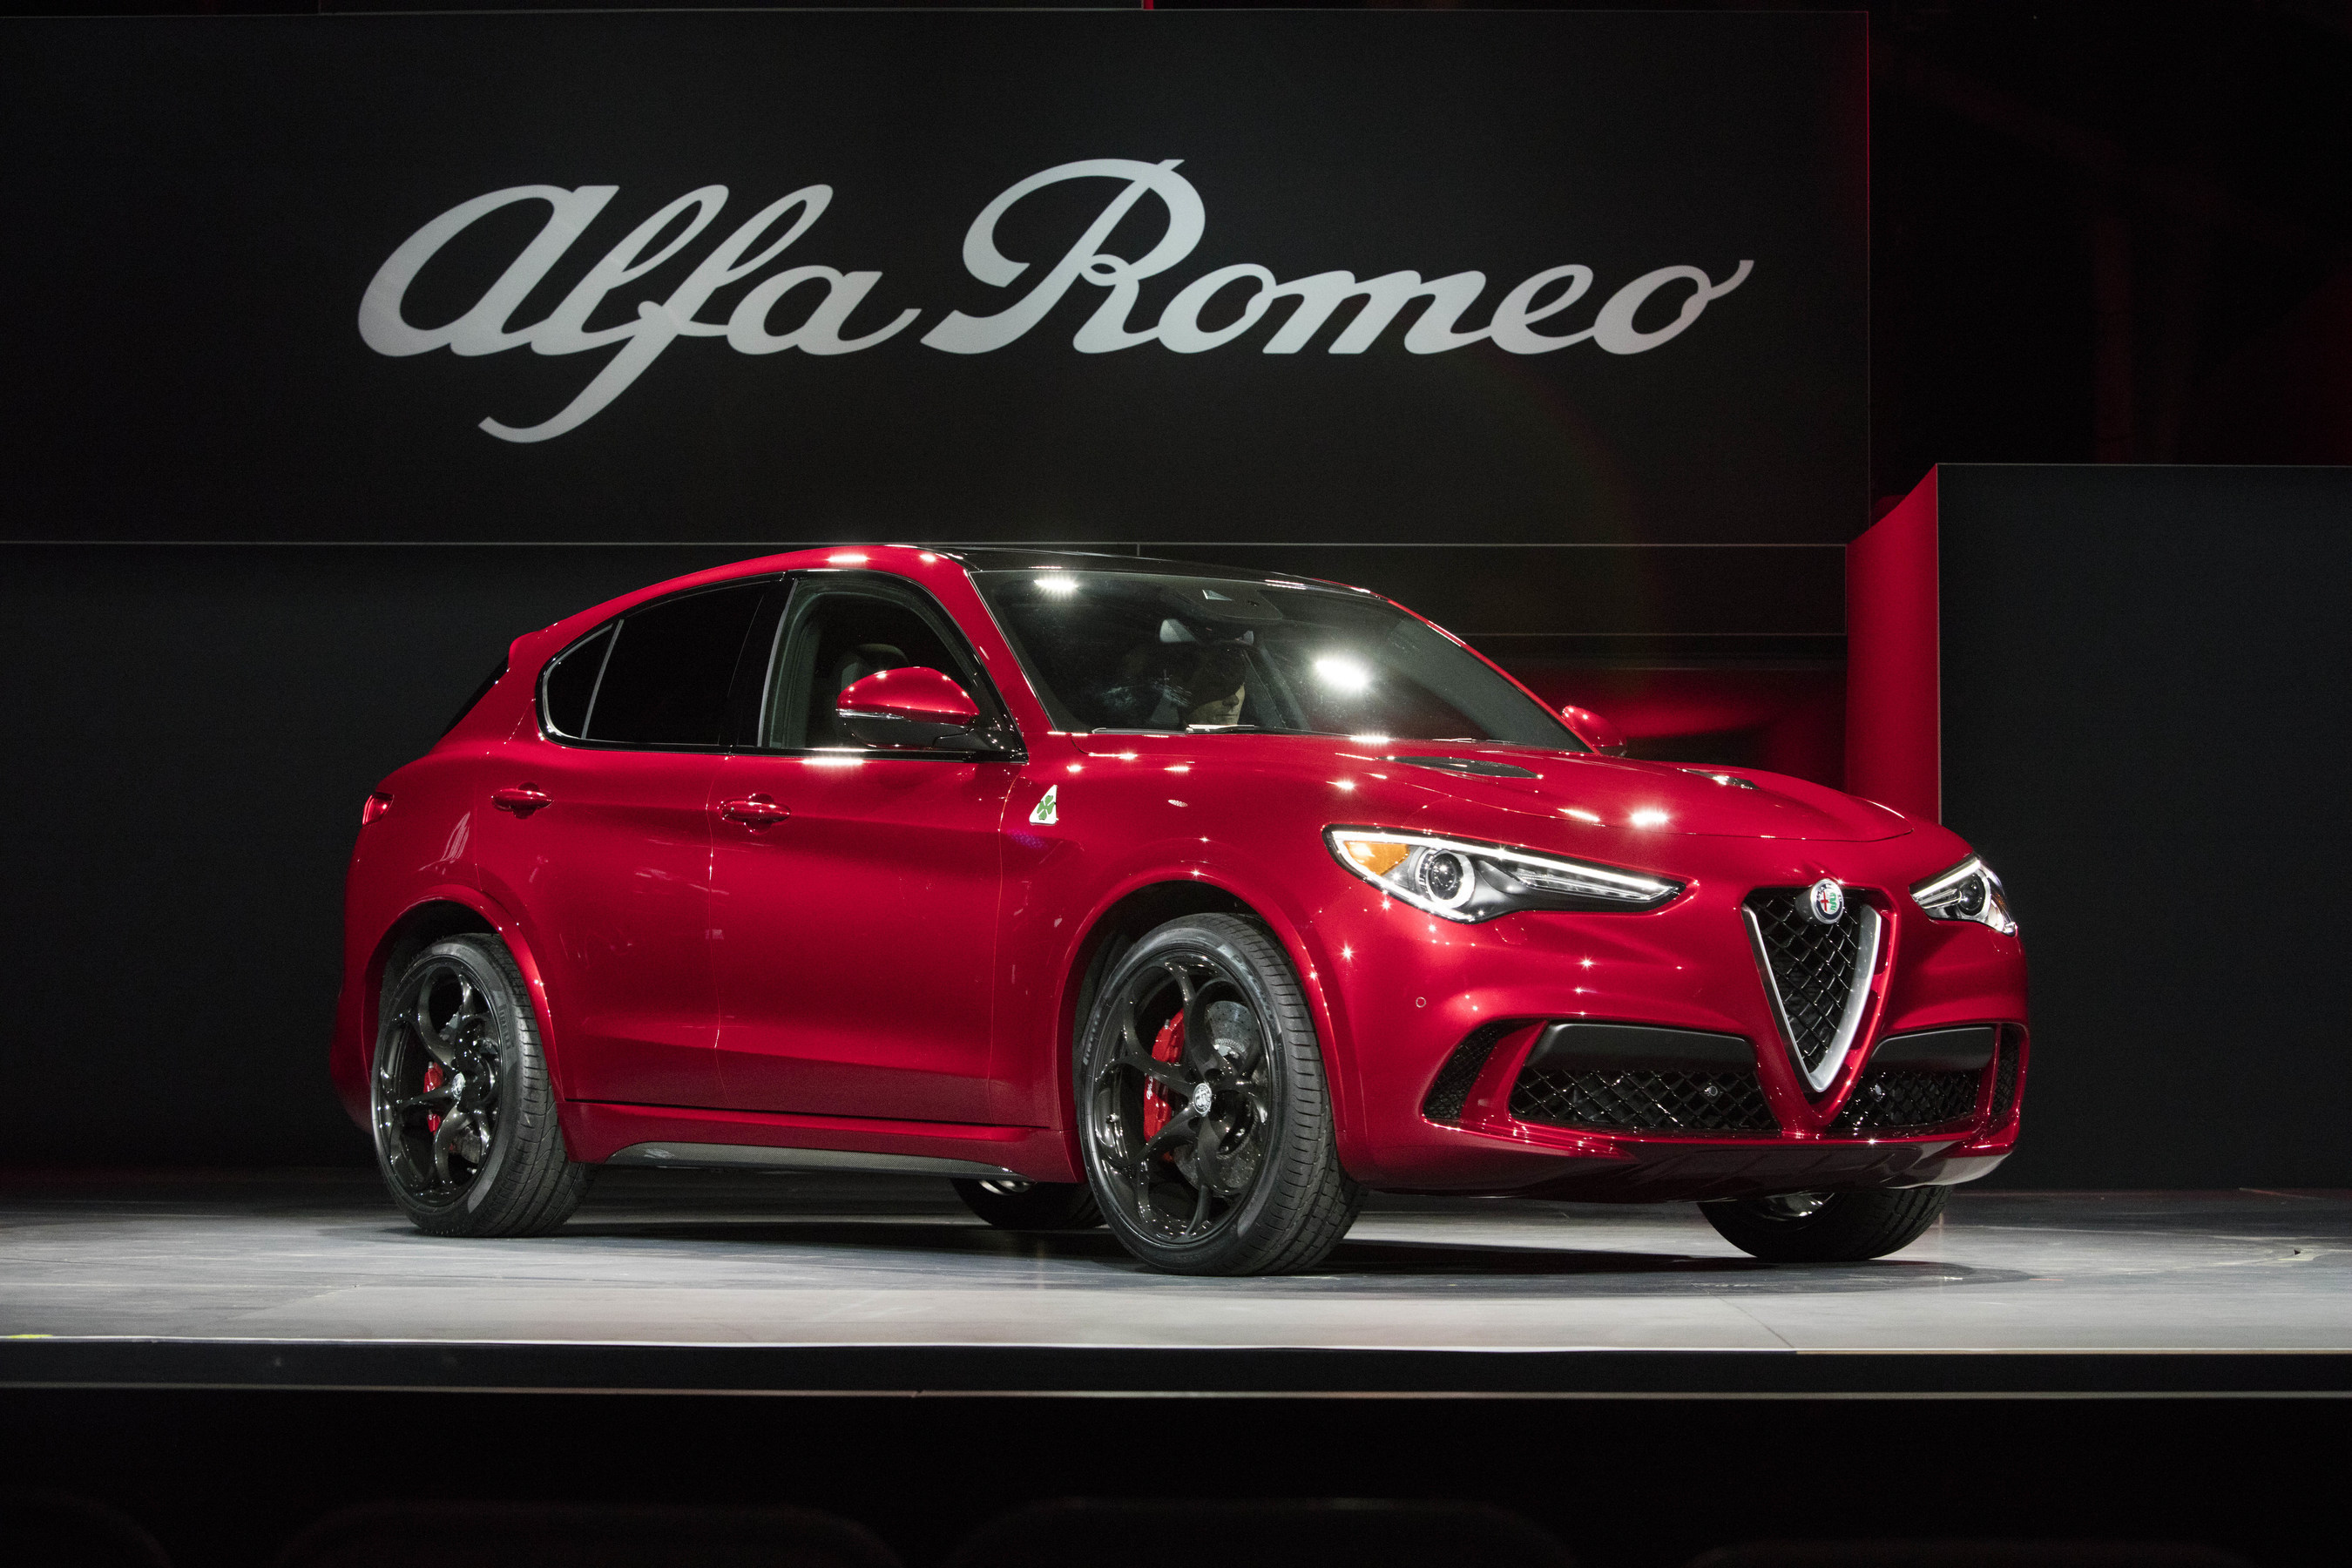 All New 2018 Alfa Romeo Stelvio Suv Wins Cars S First Ever Best In Show Award At 2016 L A Auto